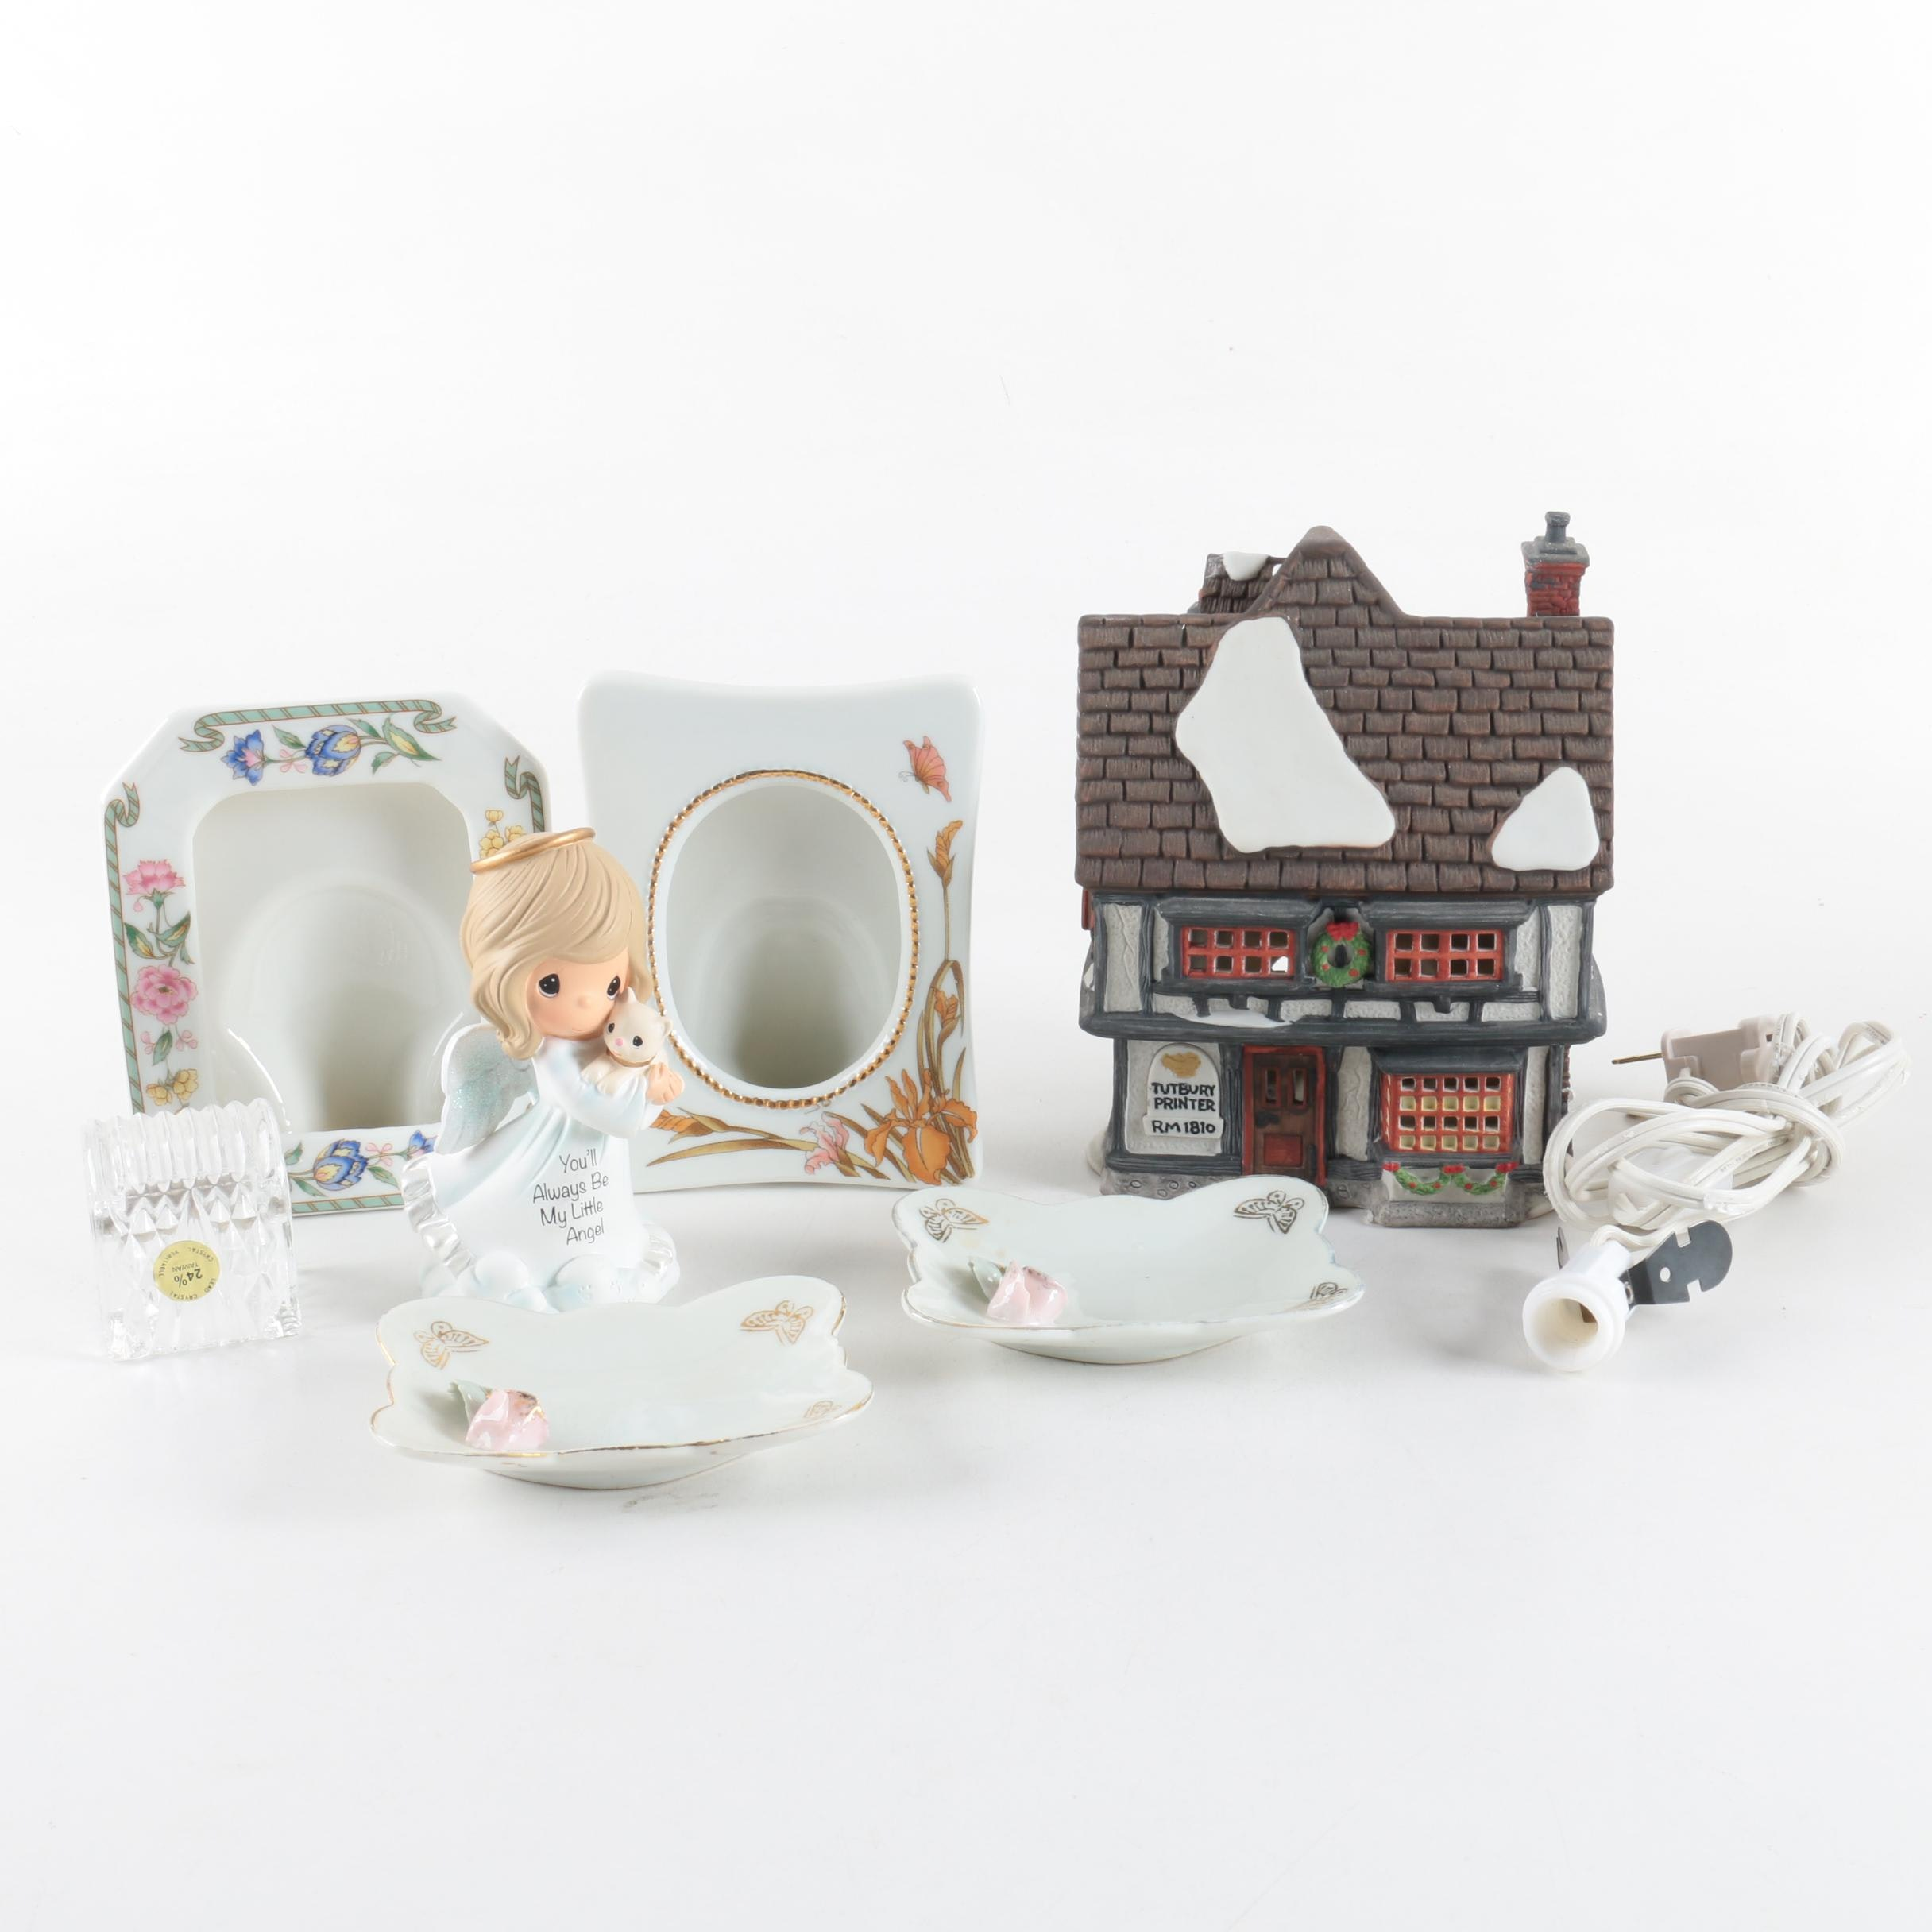 Dept. 56, Precious Moments, Leaded Crystal, and Porcelain Items